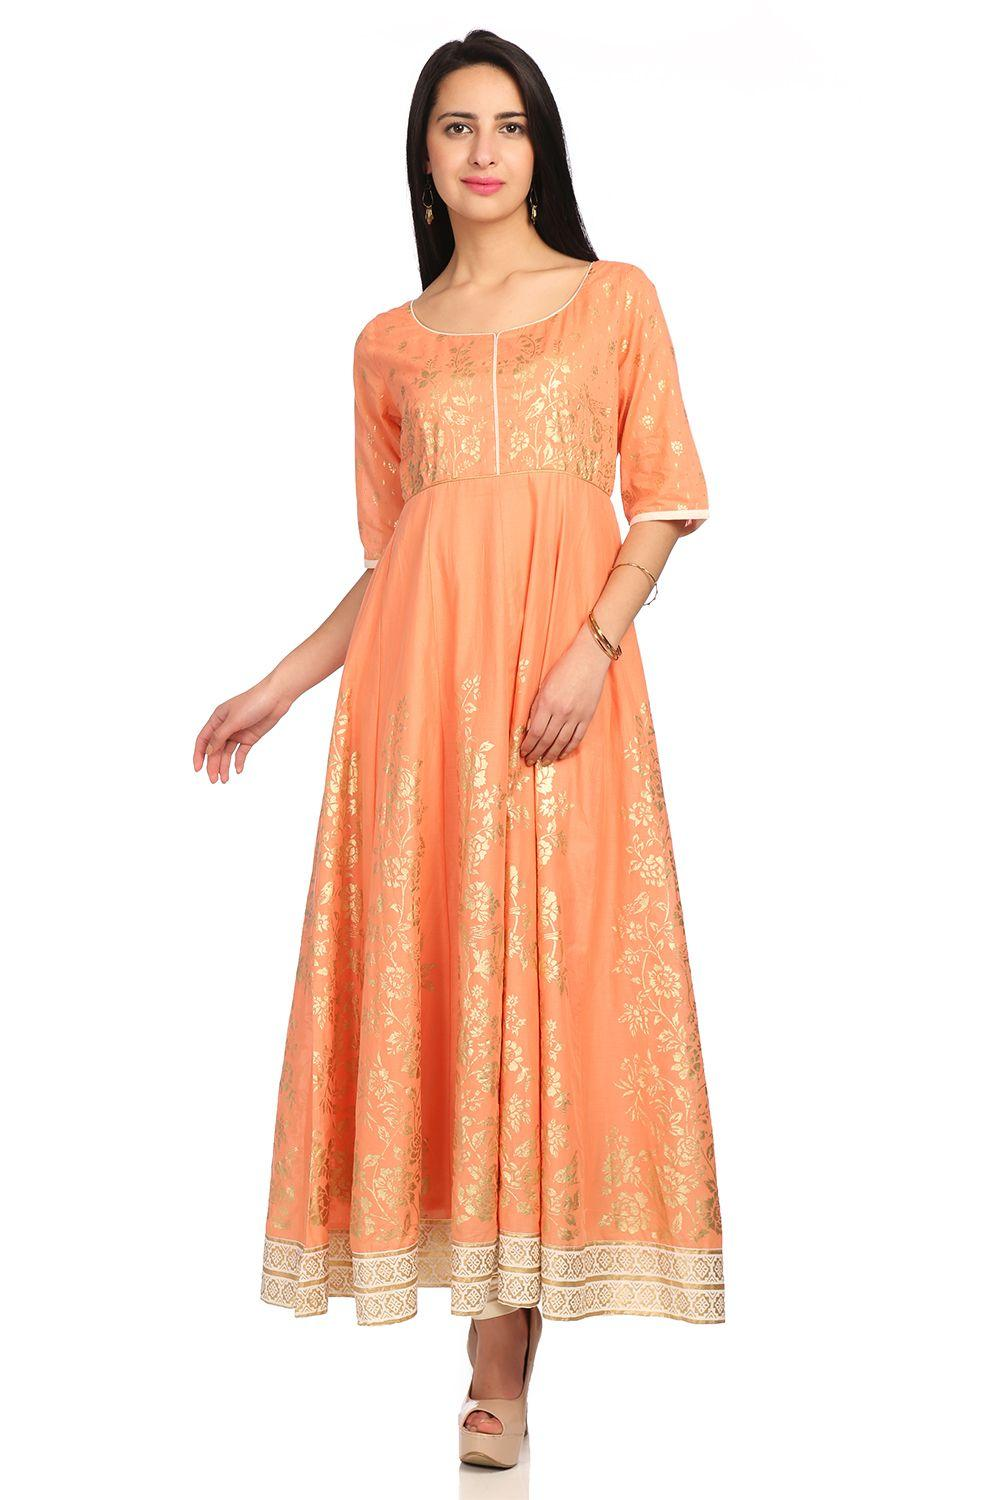 Coral Anarkali Metallic Cotton Kurta - SUMMERE1351